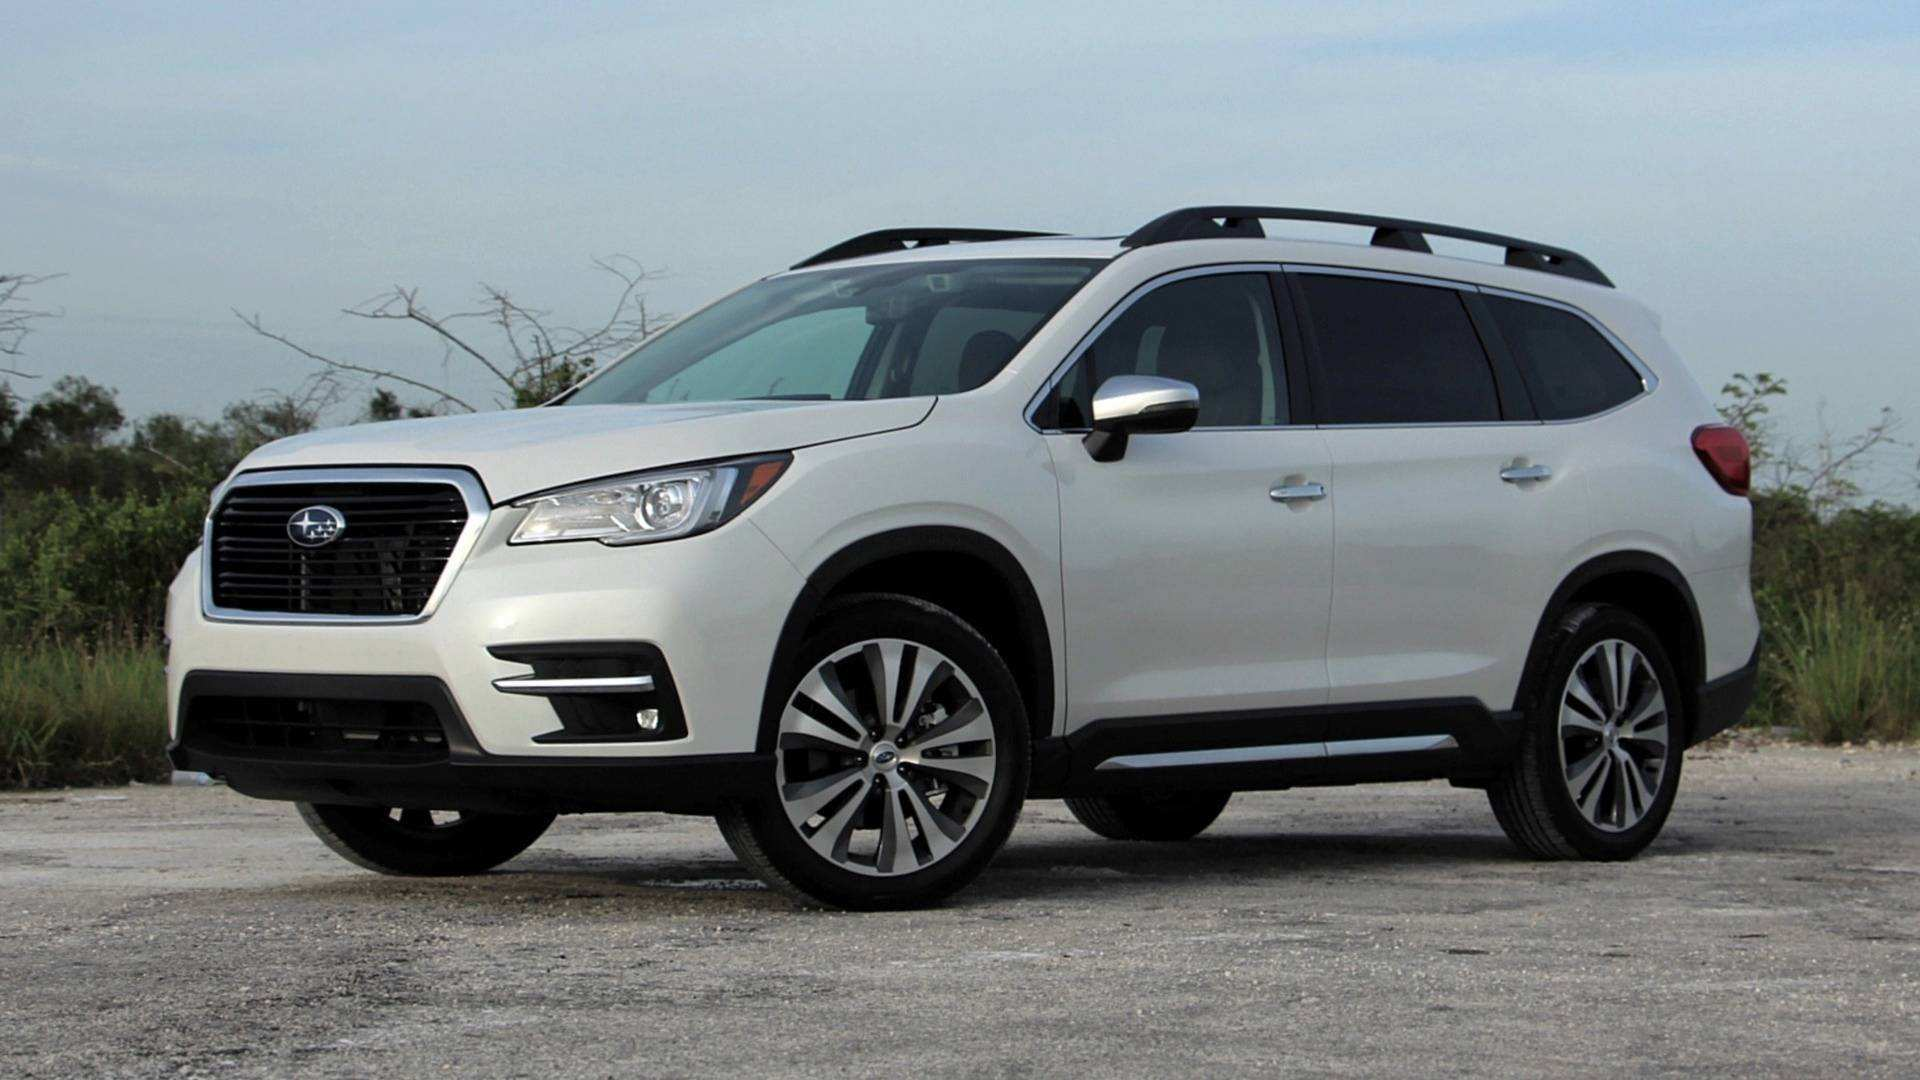 48 Great 2019 Subaru Ascent Fuel Economy Price and Review for 2019 Subaru Ascent Fuel Economy